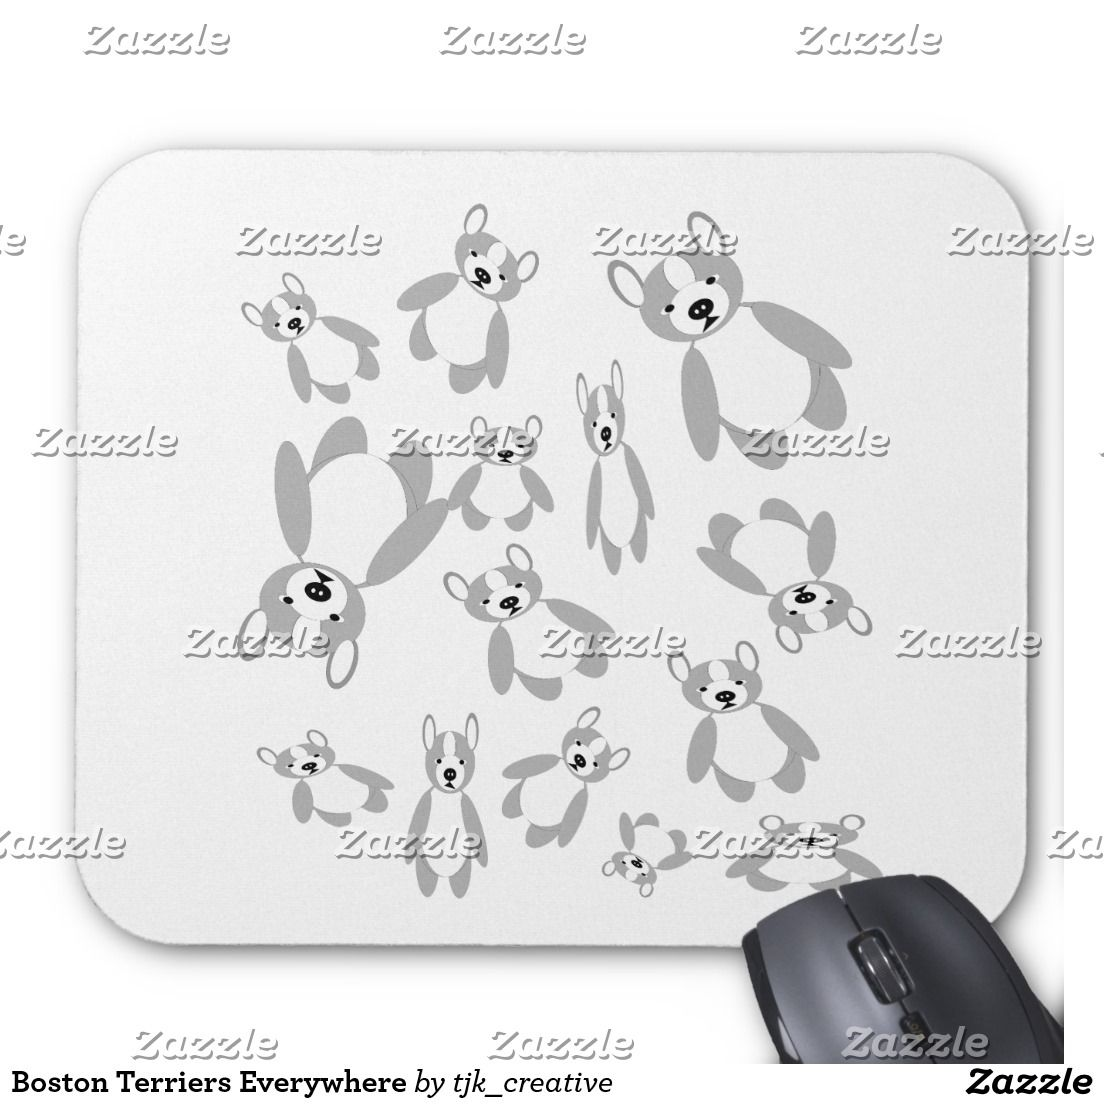 Boston Terriers Everywhere Mouse Pad Pinterest Computer Diagram